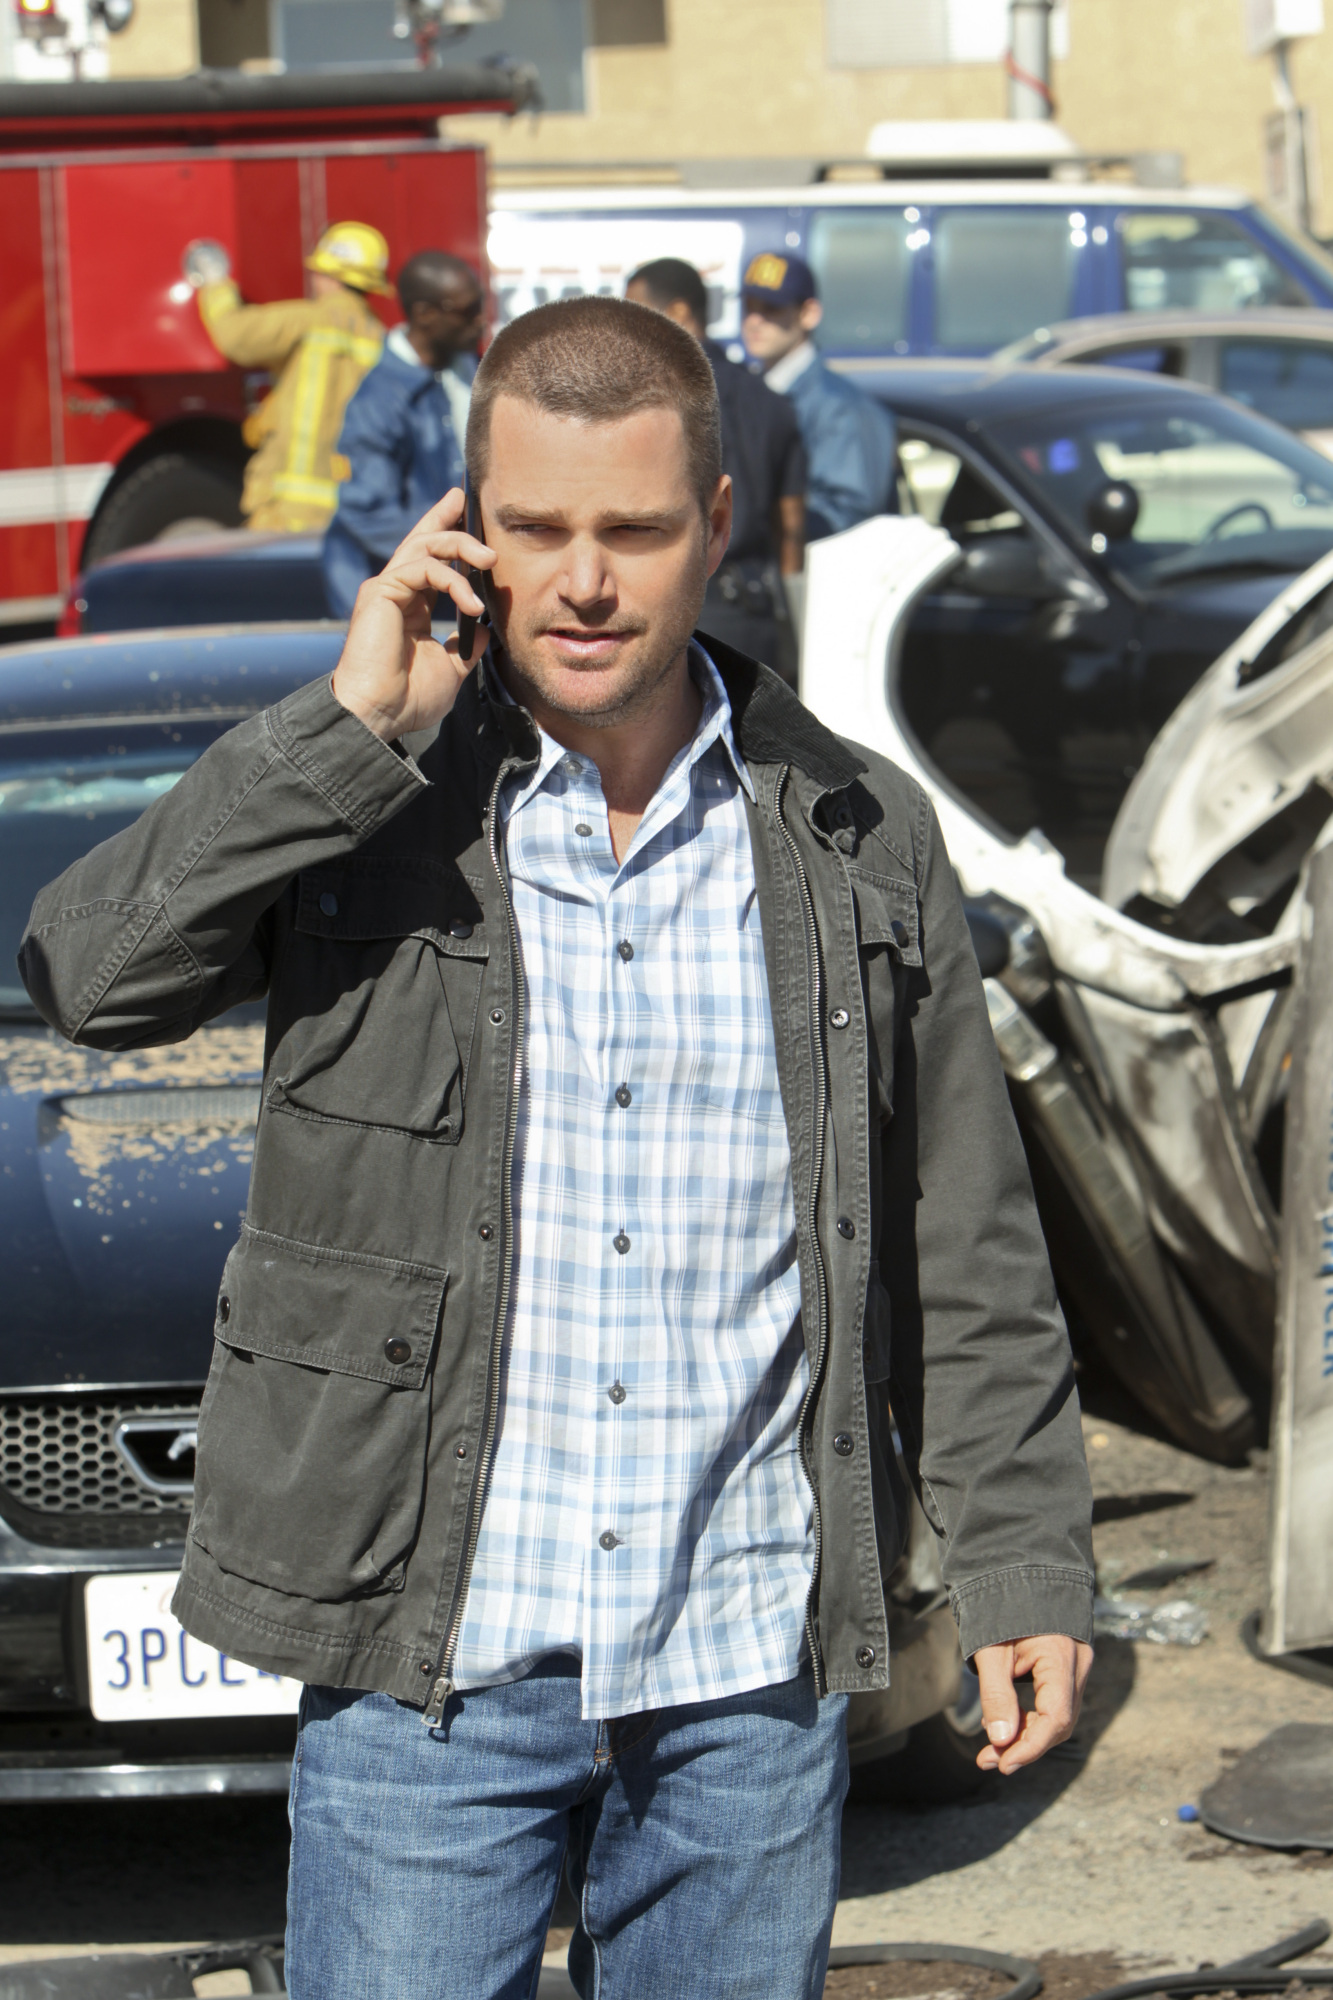 Season 5 Episode 23 Photos - NCIS: Los Angeles